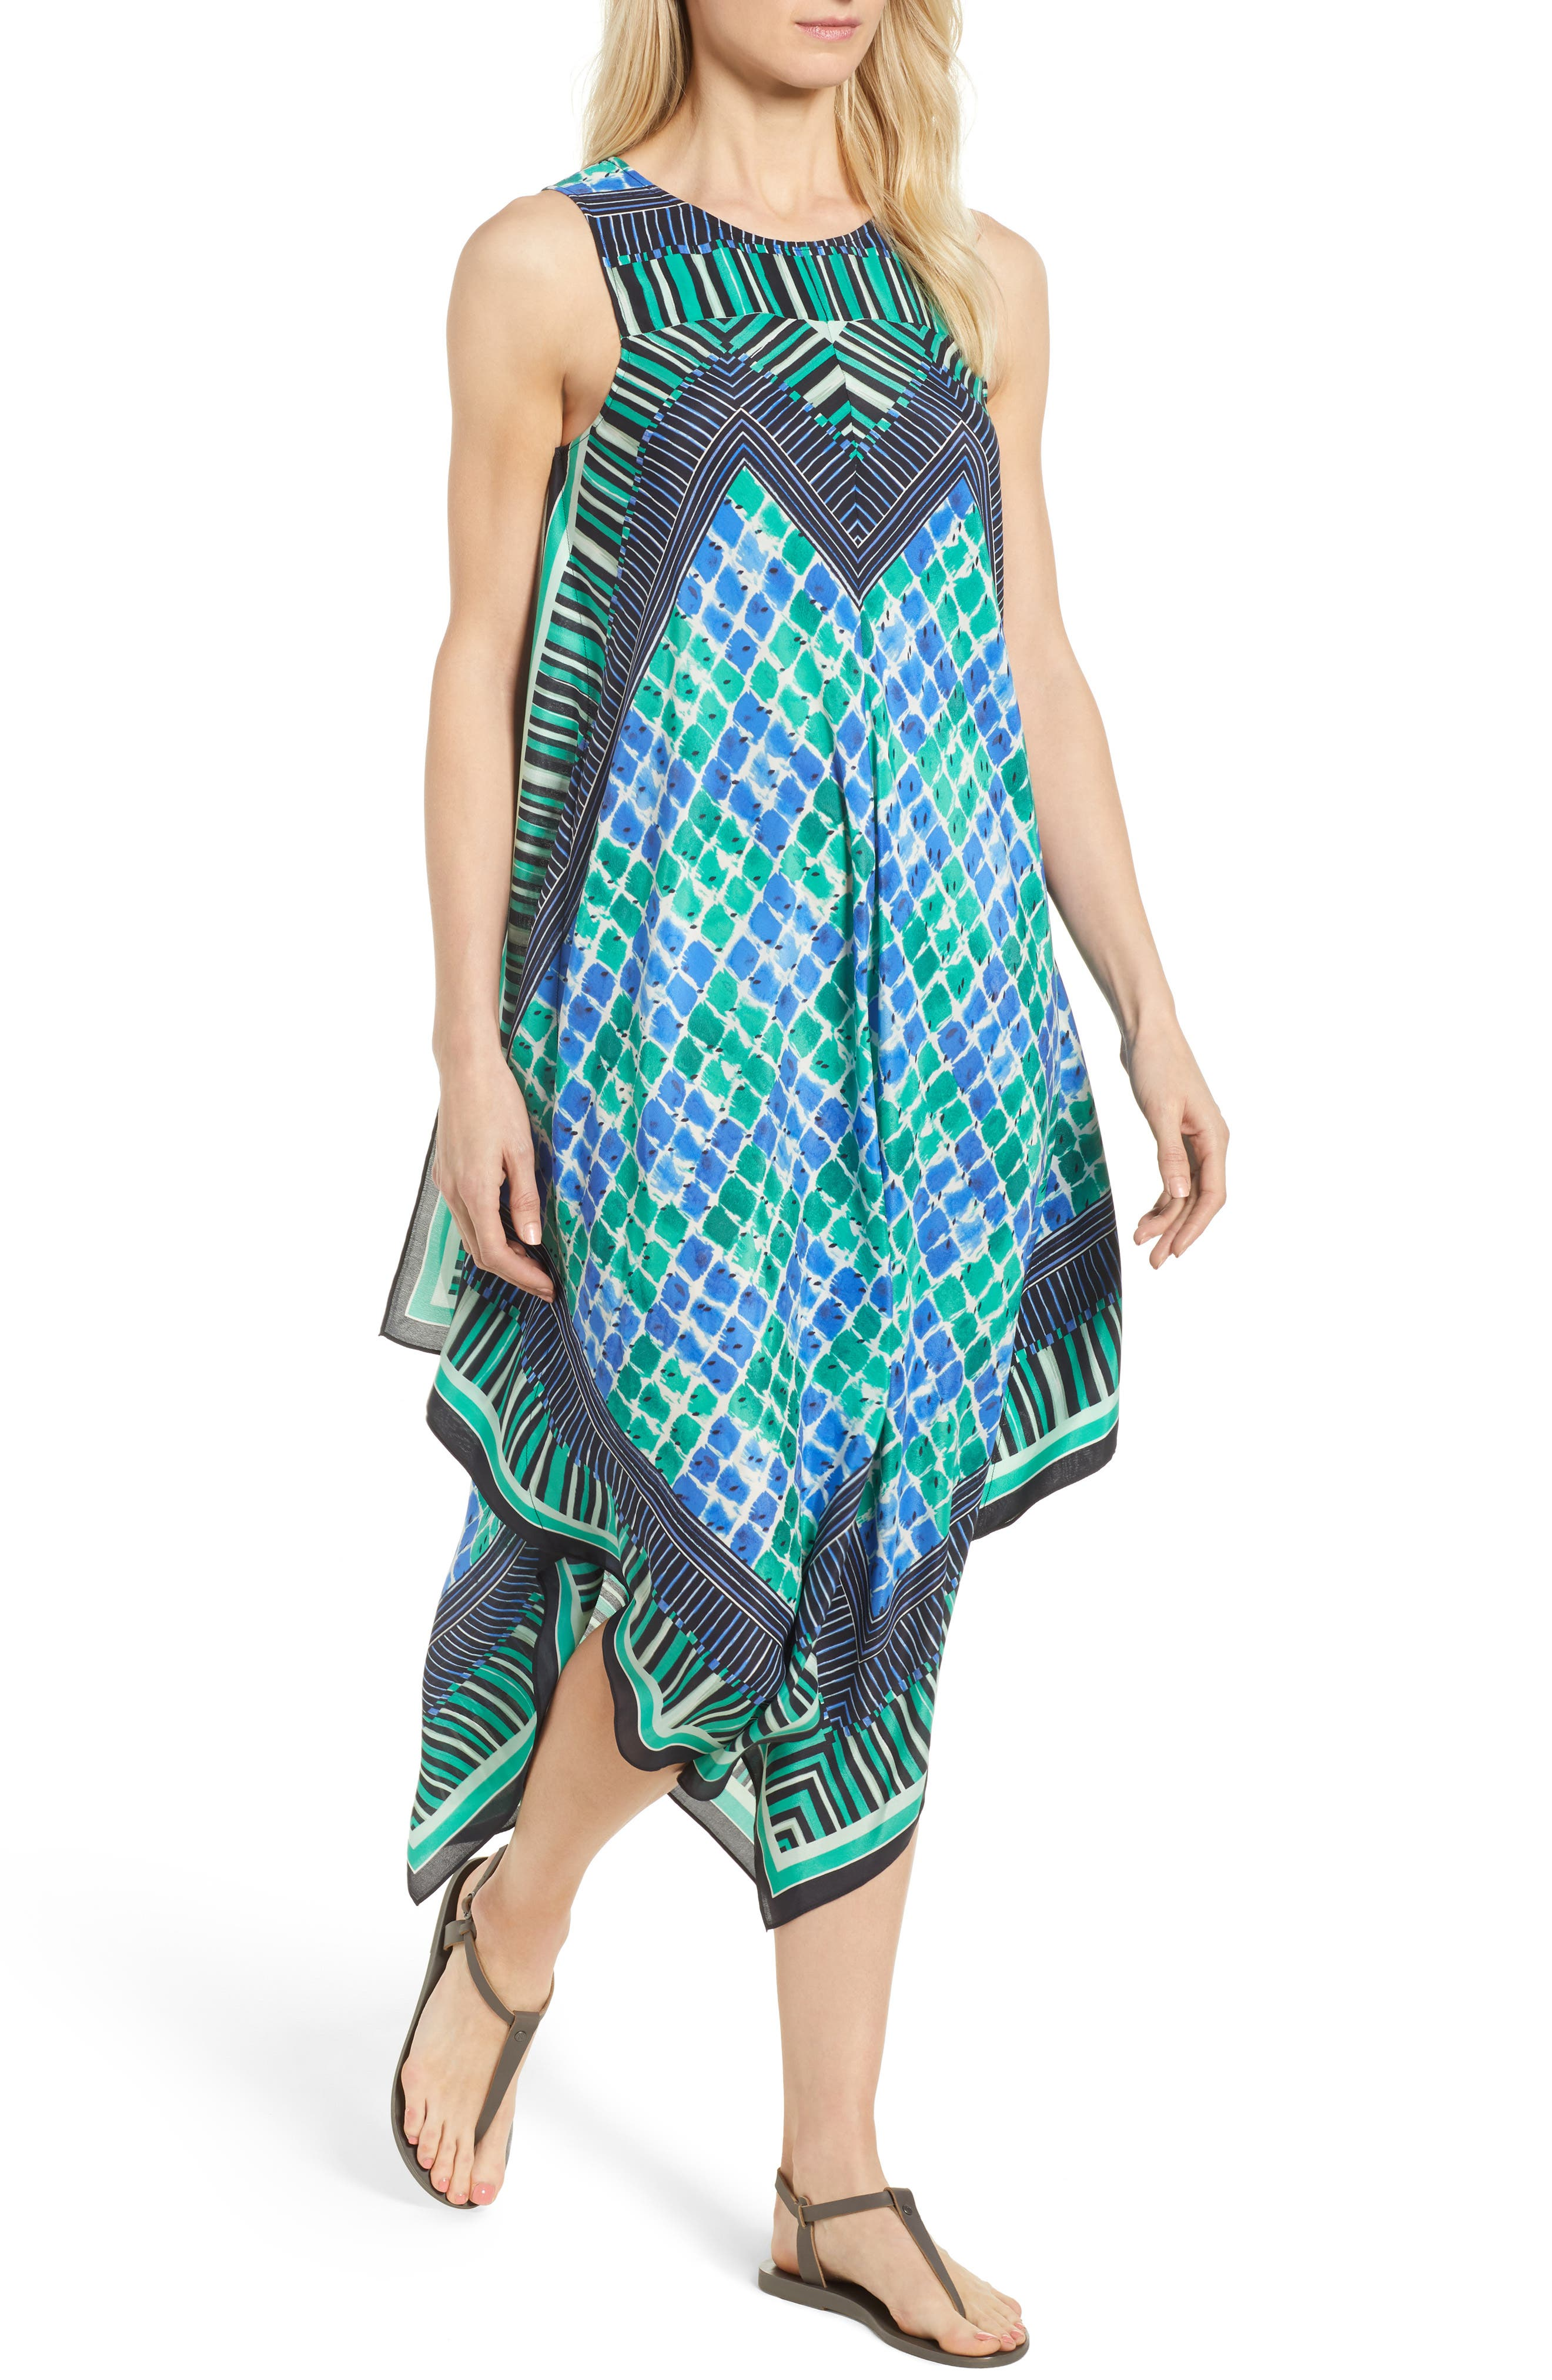 DJ VU Print Tank Dress,                         Main,                         color, Multi